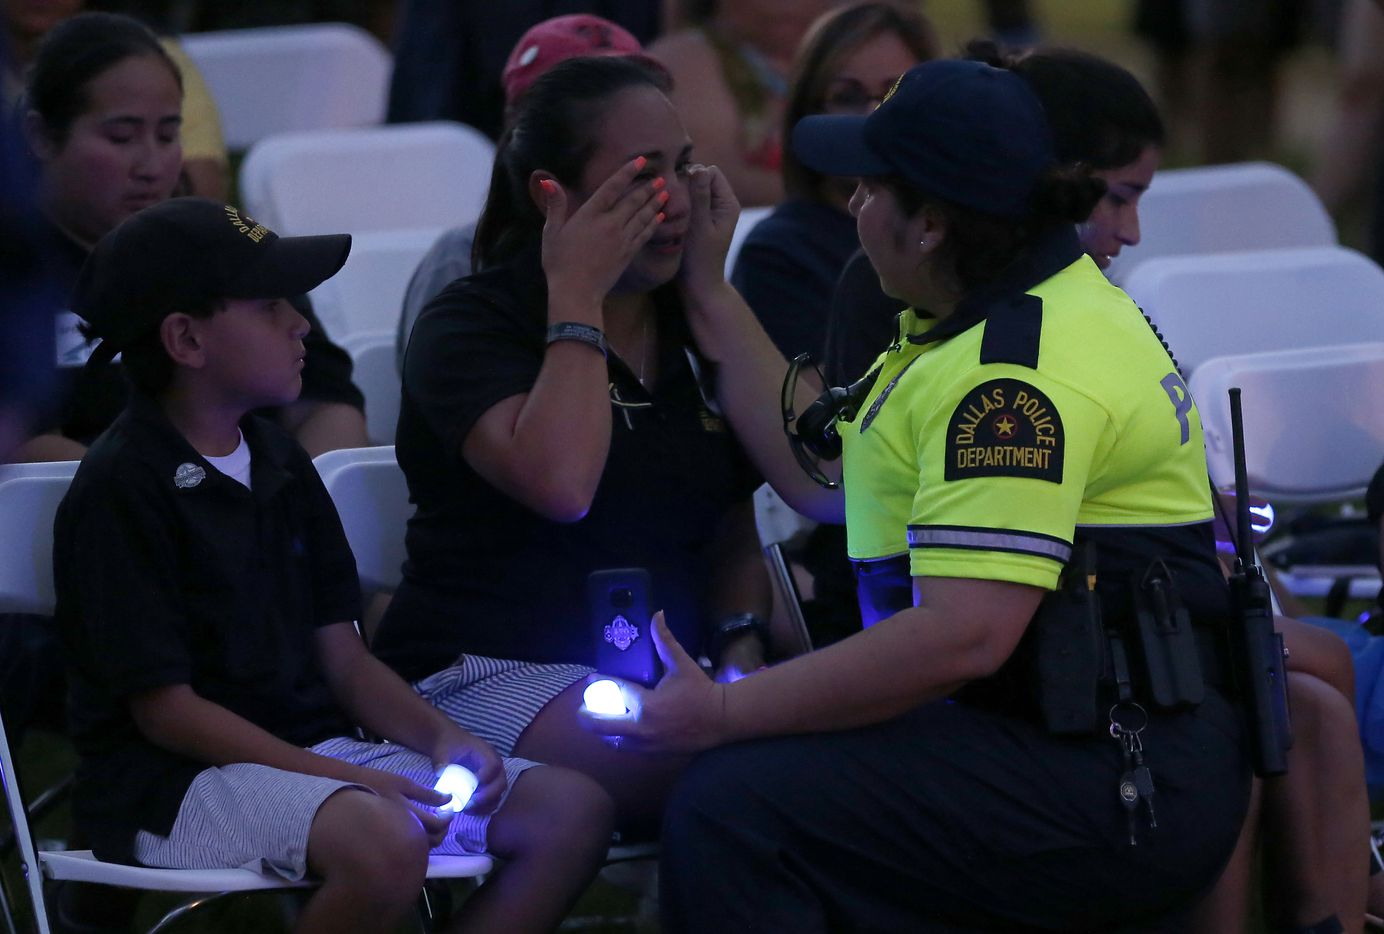 Kristy Zamarripa (center) wipes tears away as she's comforted by Dallas Bike Officer Ana Arrona (right) as Kristy's son Dylan Hoover looks on during the Tribute 7/7 closing ceremony at Dallas Police Memorial in Dallas, Friday, July 7, 2017. Her partner, Patrick Zamarripa, was one of the Dallas police officers killed.